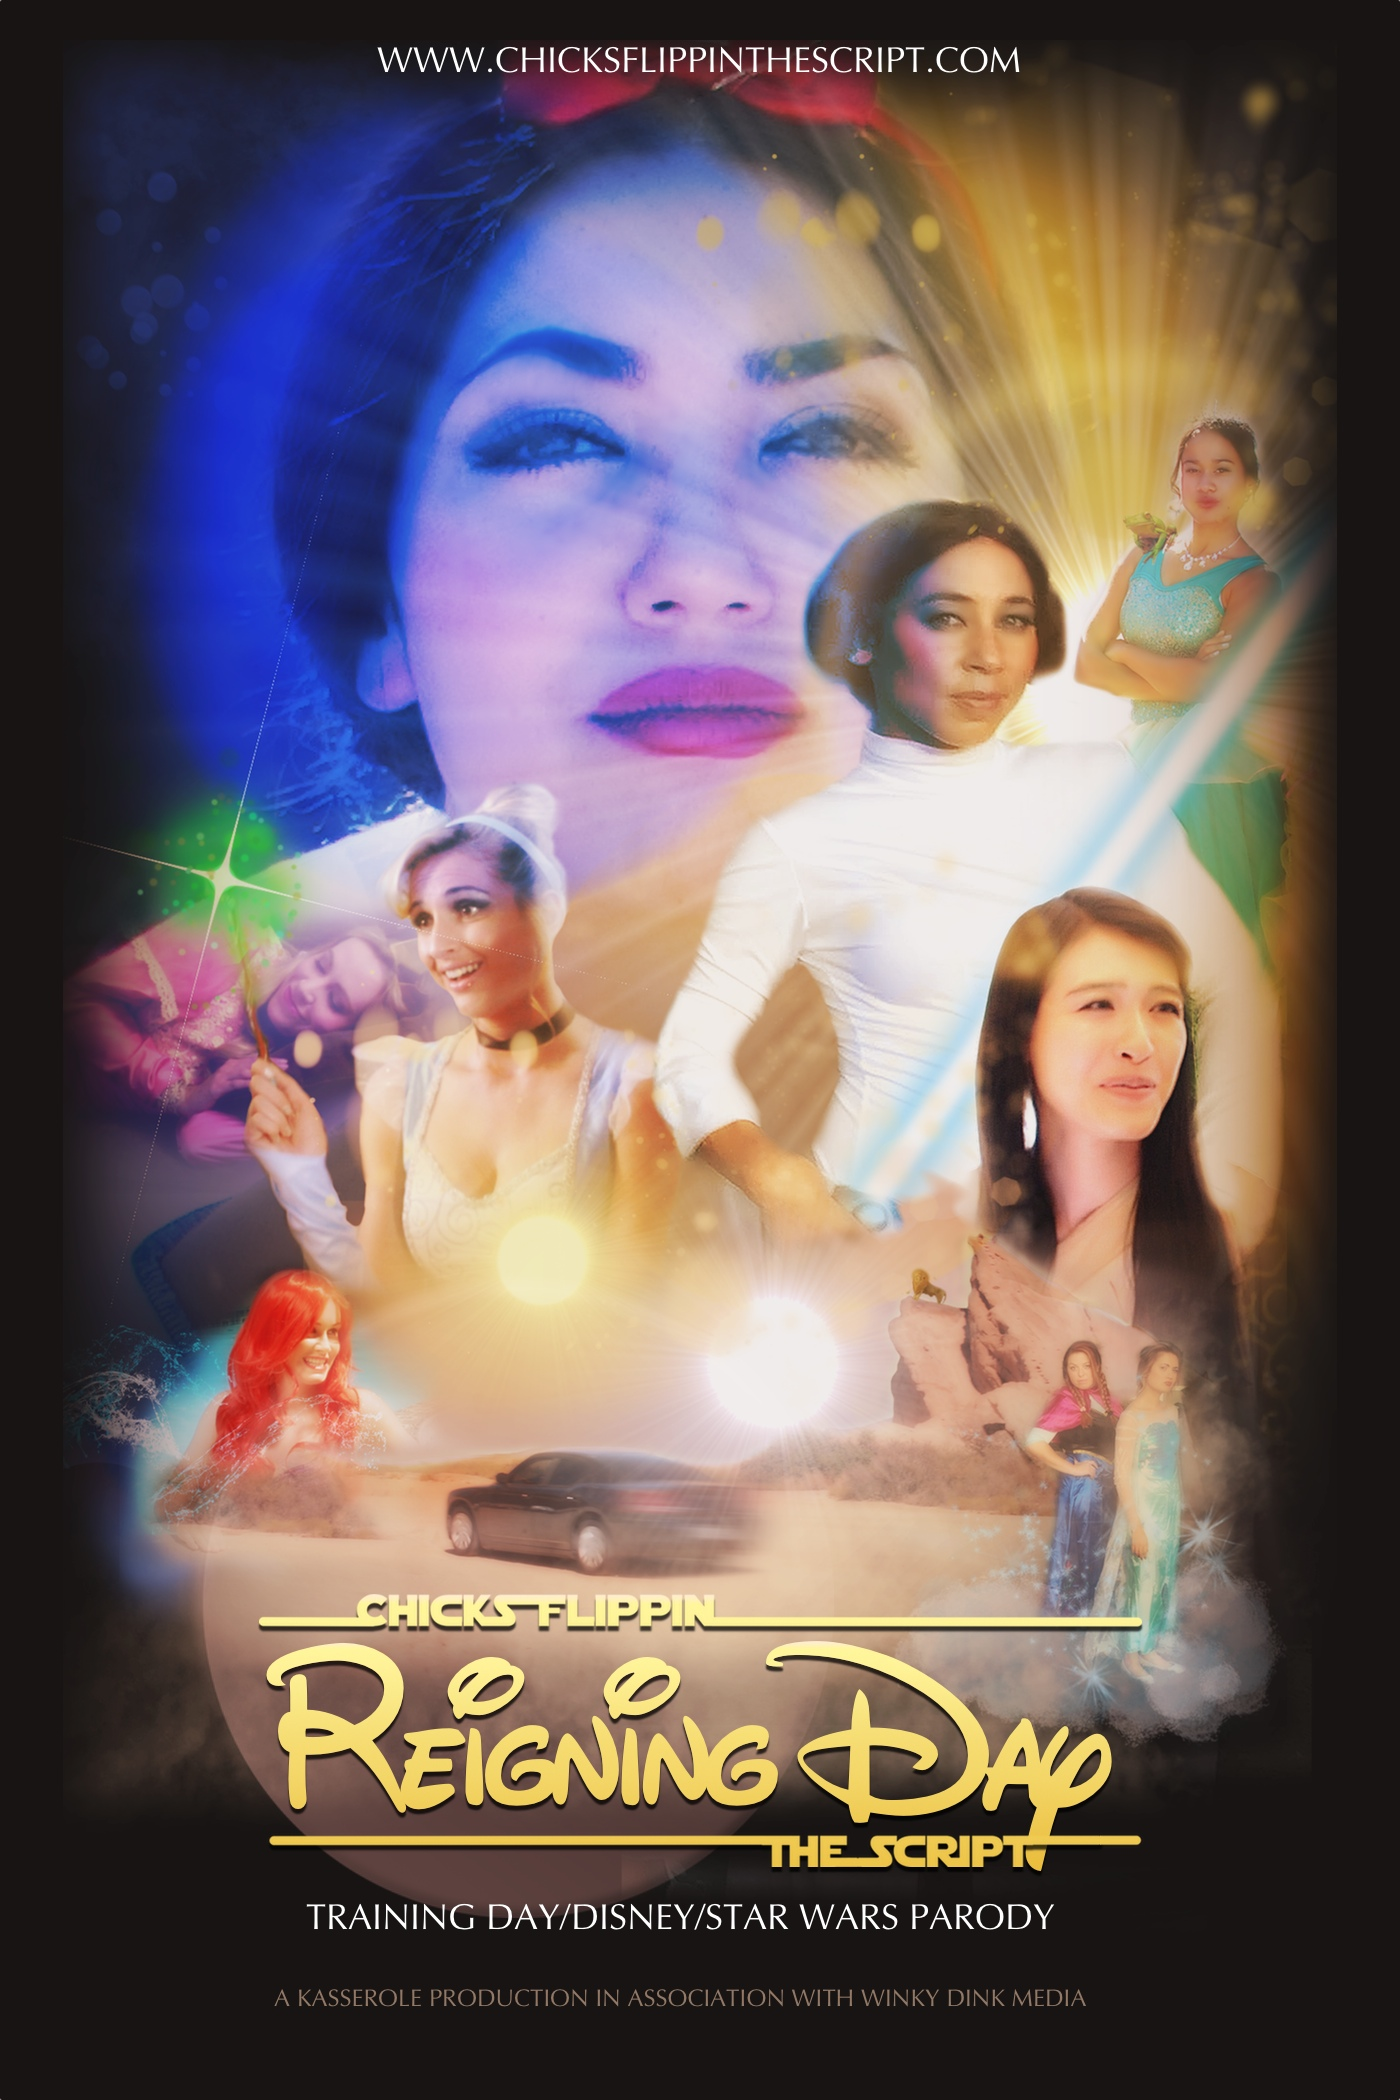 Reigning Day – Training Day/Star Wars/Disney Parody